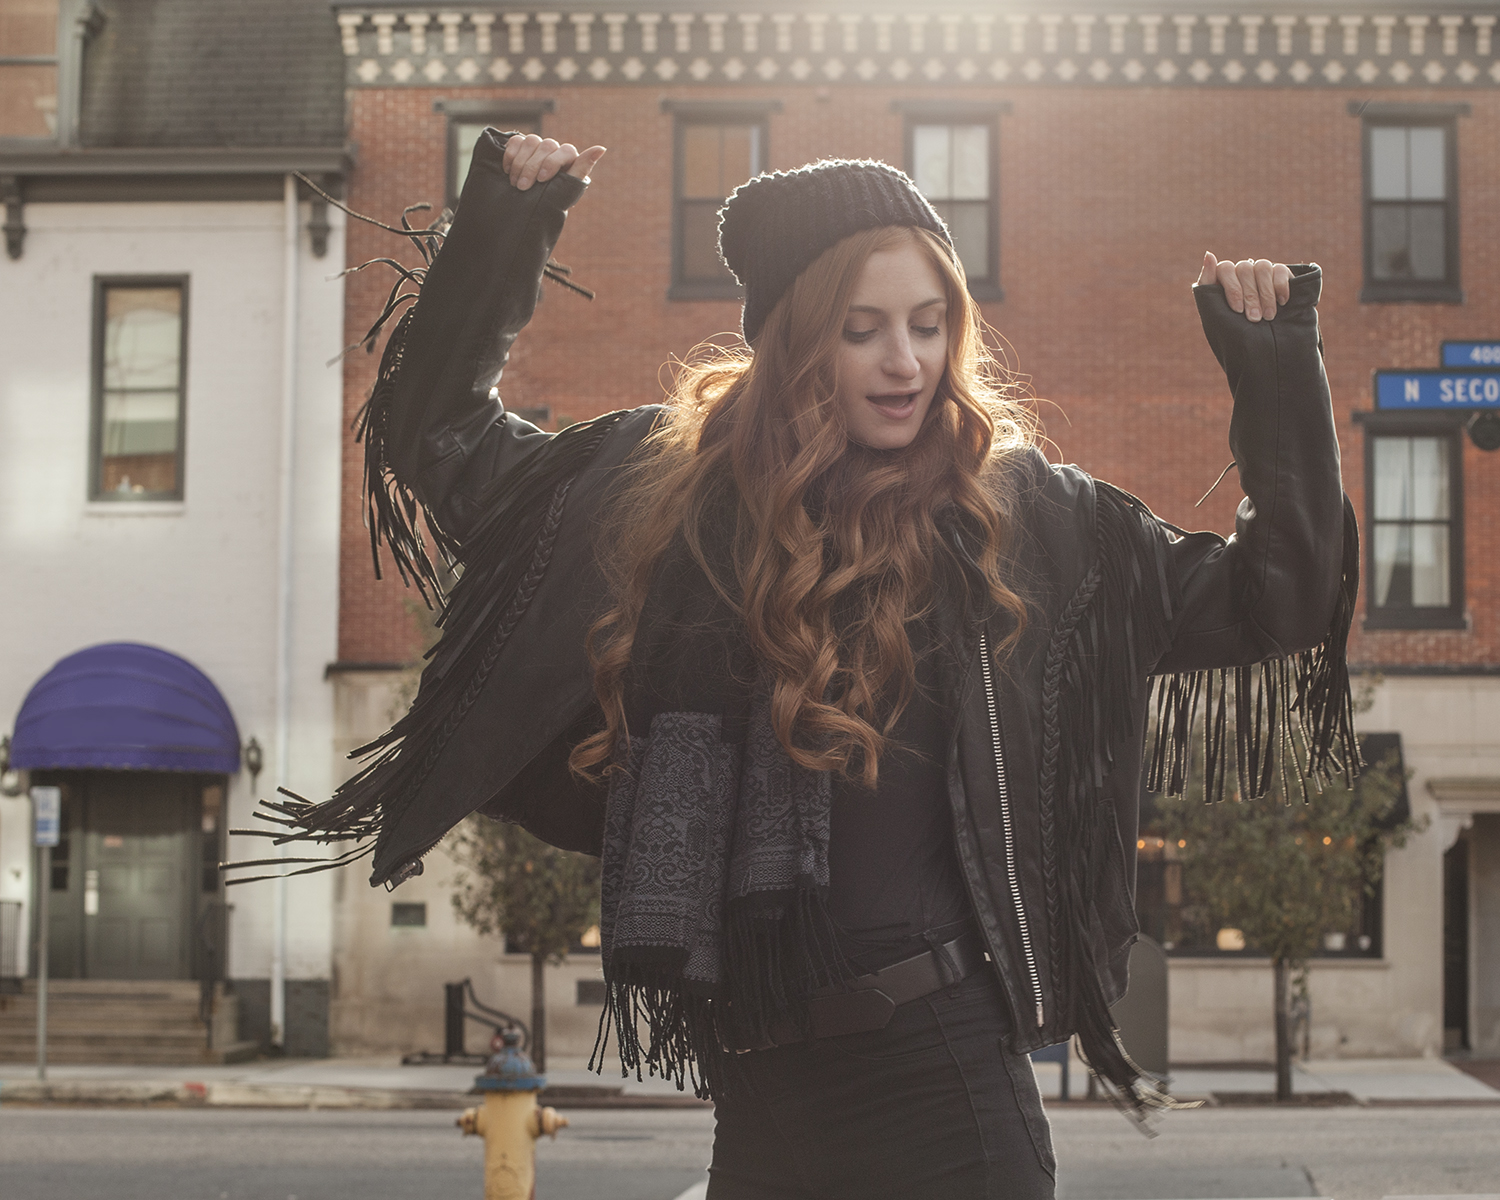 redhead girl with arms up in fringe leather jacket